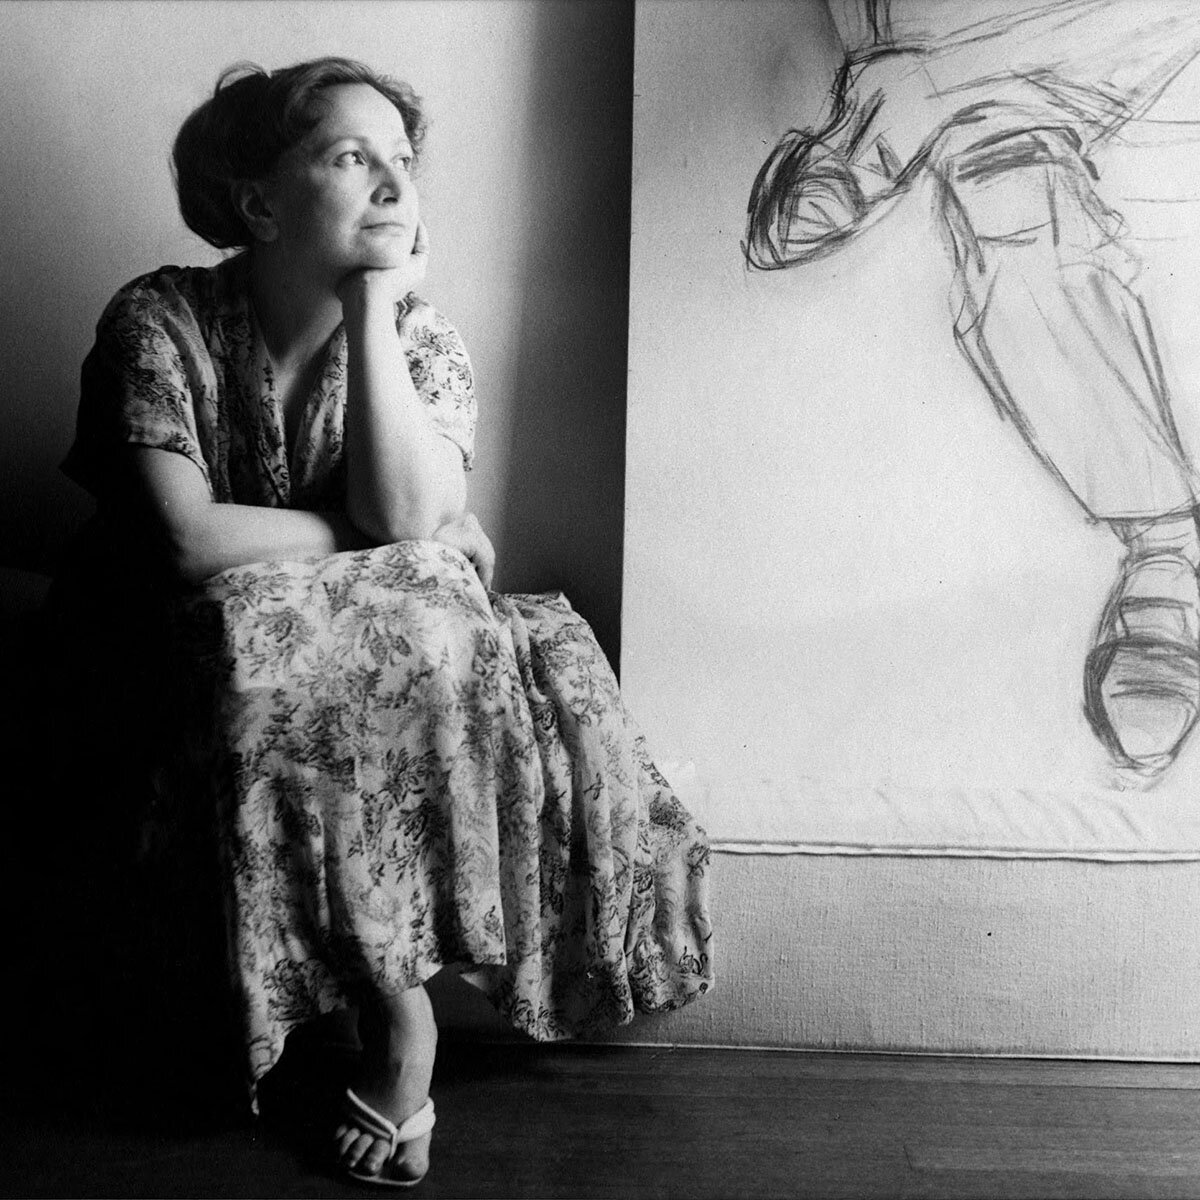 Portrait of Hedda Sterne by the Waintrob Brothers, c. 1960